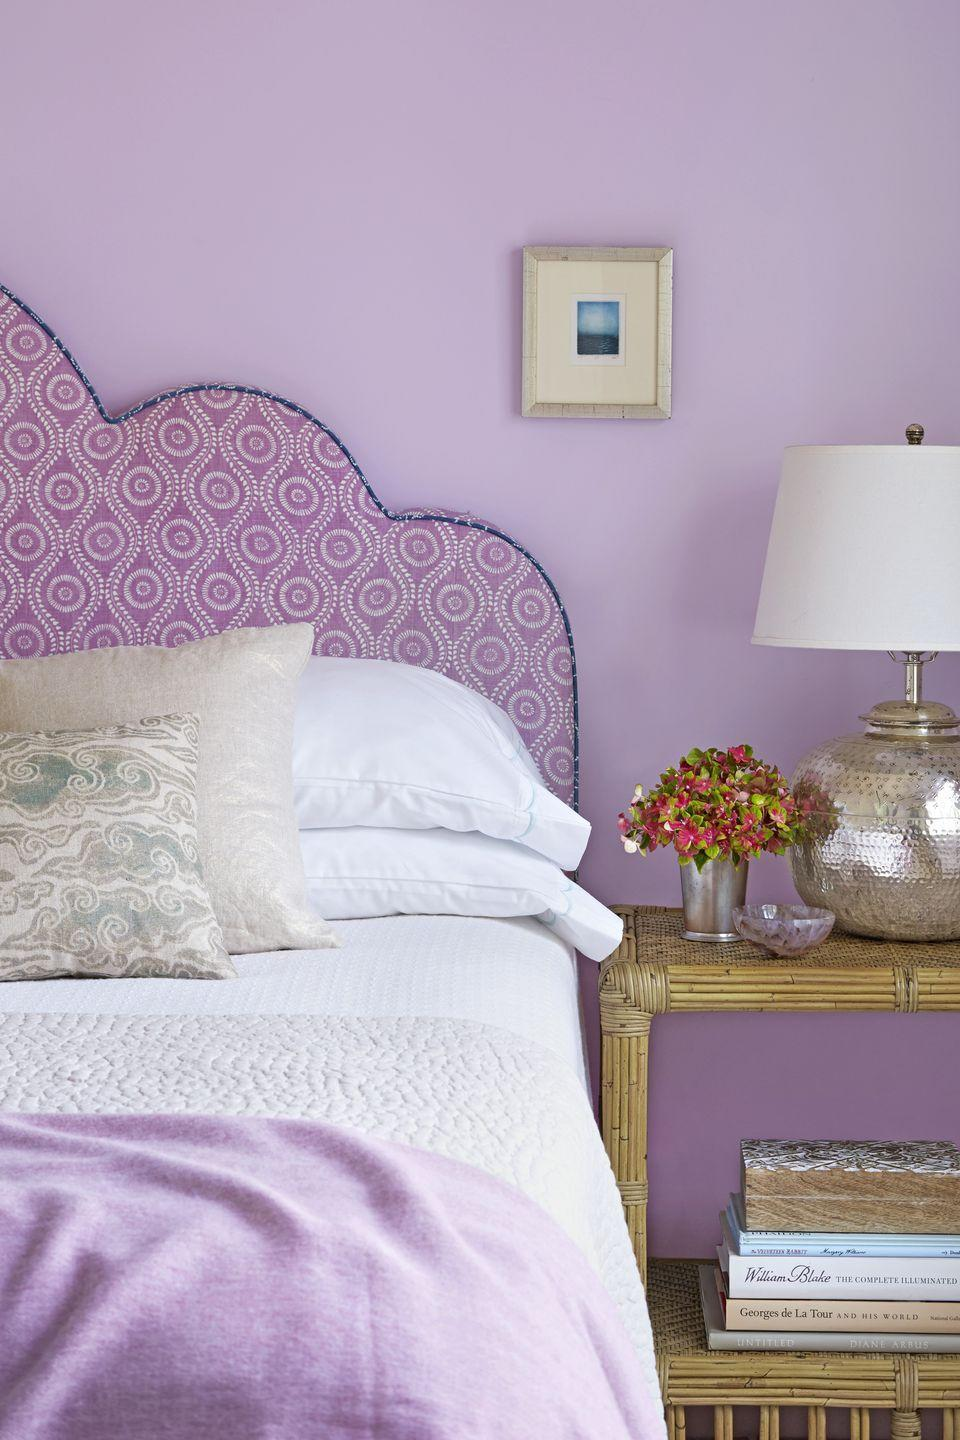 """<p>In this well-appointed feminine bedroom, <a href=""""http://caitlinmoraninteriors.com/"""" rel=""""nofollow noopener"""" target=""""_blank"""" data-ylk=""""slk:designer Caitlin Moran"""" class=""""link rapid-noclick-resp"""">designer Caitlin Moran </a>mastered the art of tone on tone with pale lilac walls, a purple upholstered headboard, and a lilac throw. White bedding breaks up the similar shades and keeps it from feeling overwhelming. </p><p><strong>Get the Look: </strong><br>Wall Paint Color: <a href=""""https://www.benjaminmoore.com/en-us/color-overview/find-your-color/color/2071-70/misty-lilac"""" rel=""""nofollow noopener"""" target=""""_blank"""" data-ylk=""""slk:Misty Lilac by Benjamin Moore"""" class=""""link rapid-noclick-resp"""">Misty Lilac by Benjamin Moore</a></p>"""